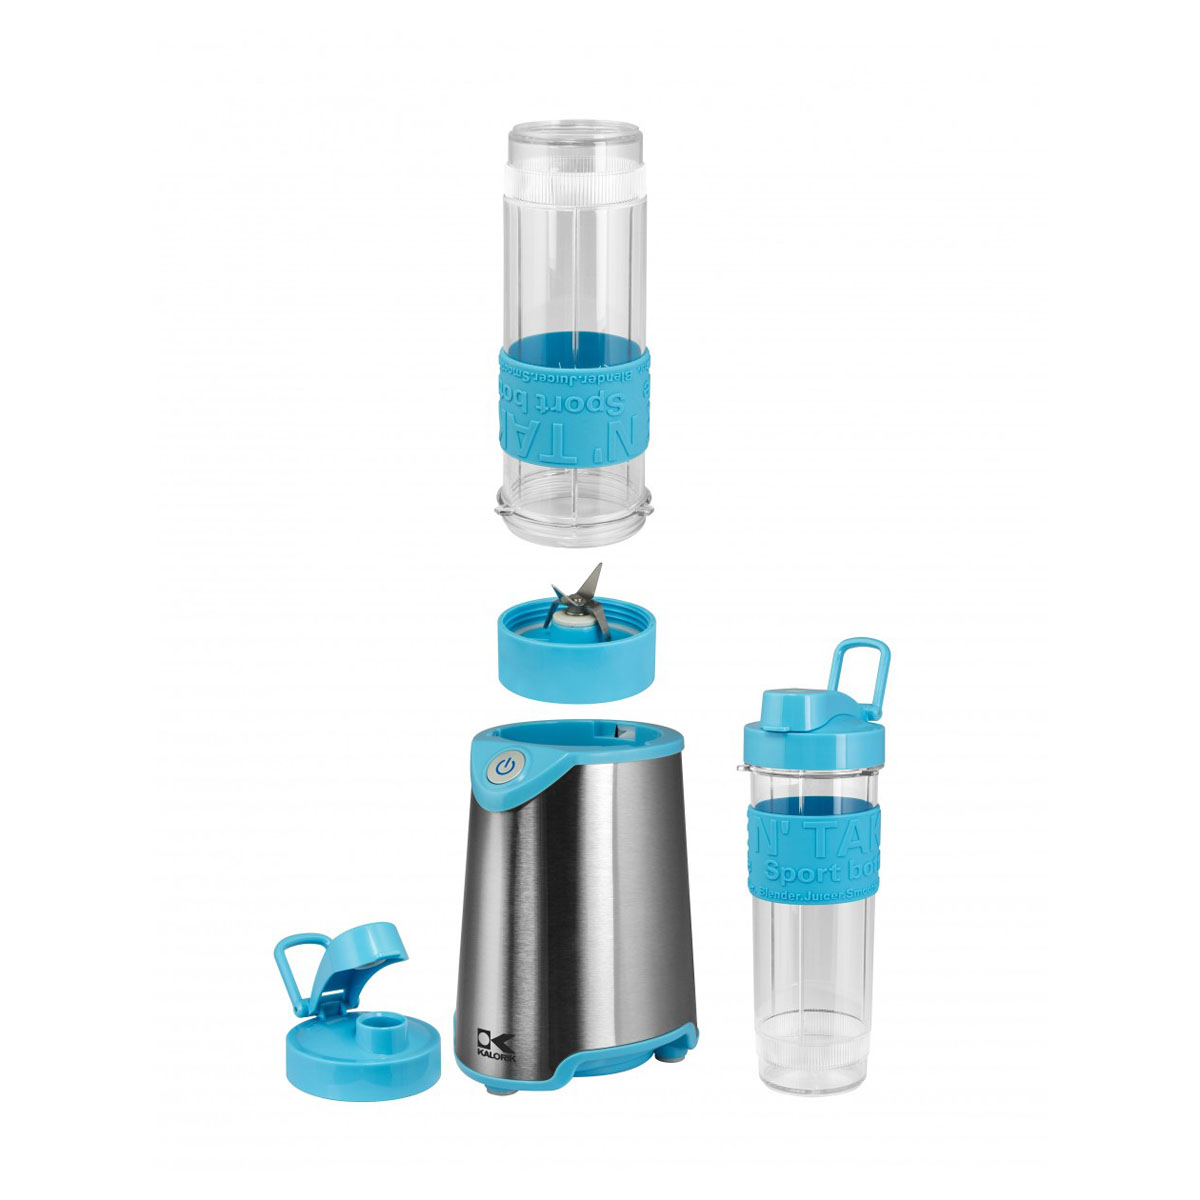 Kalorik Home and Kitchen Stainless Steel Personal Sport Multipurpose Blender - Blue